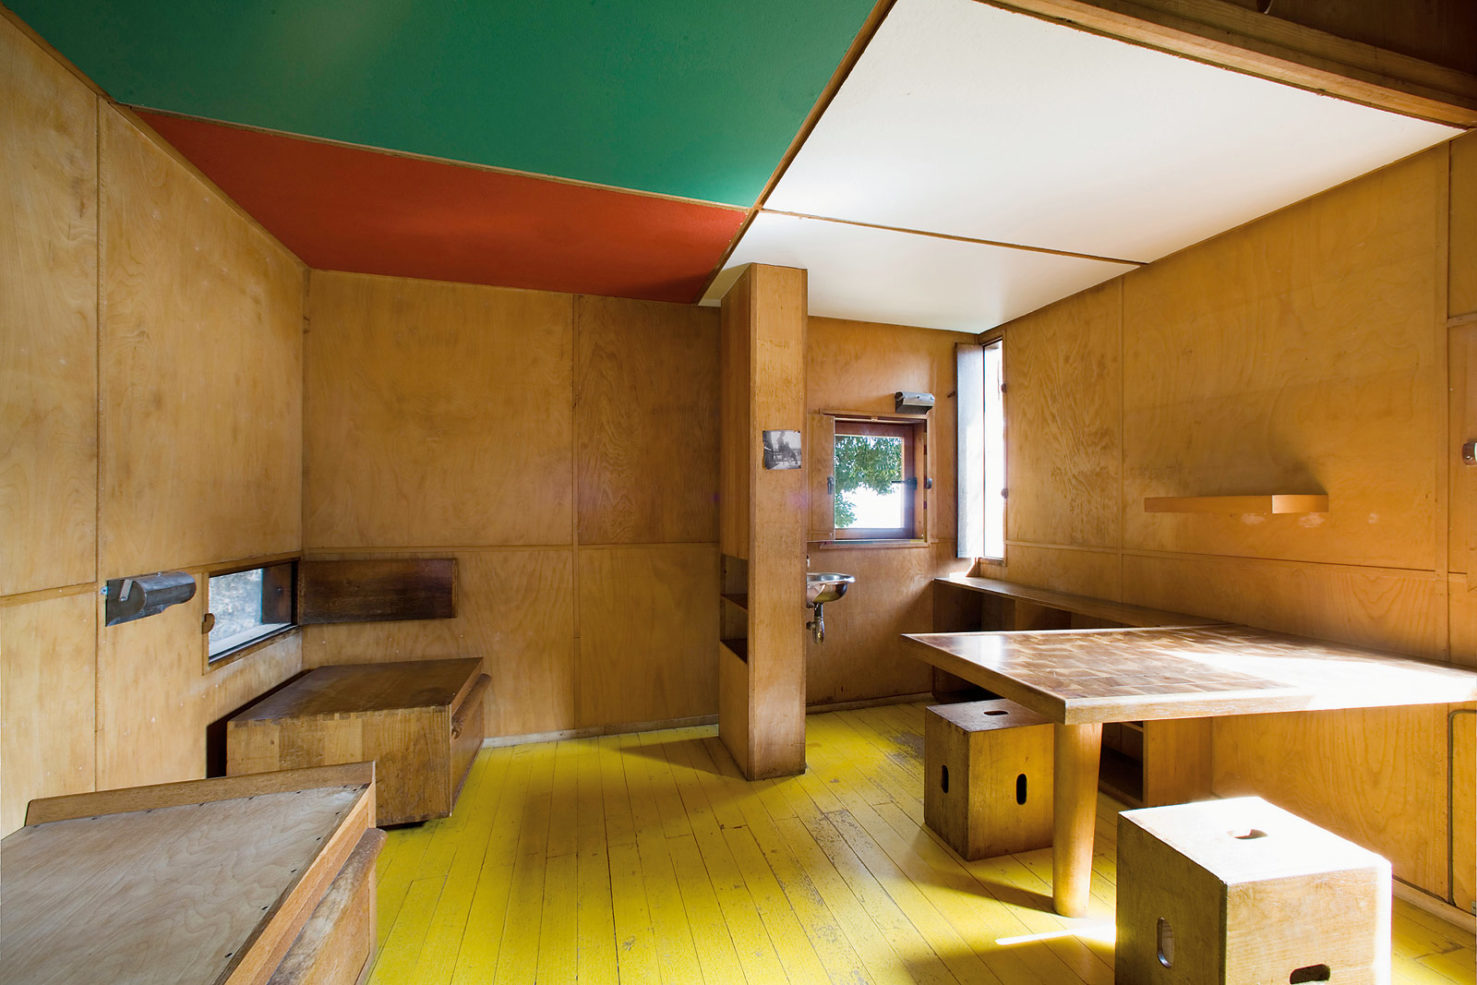 Architects' homes you can visit